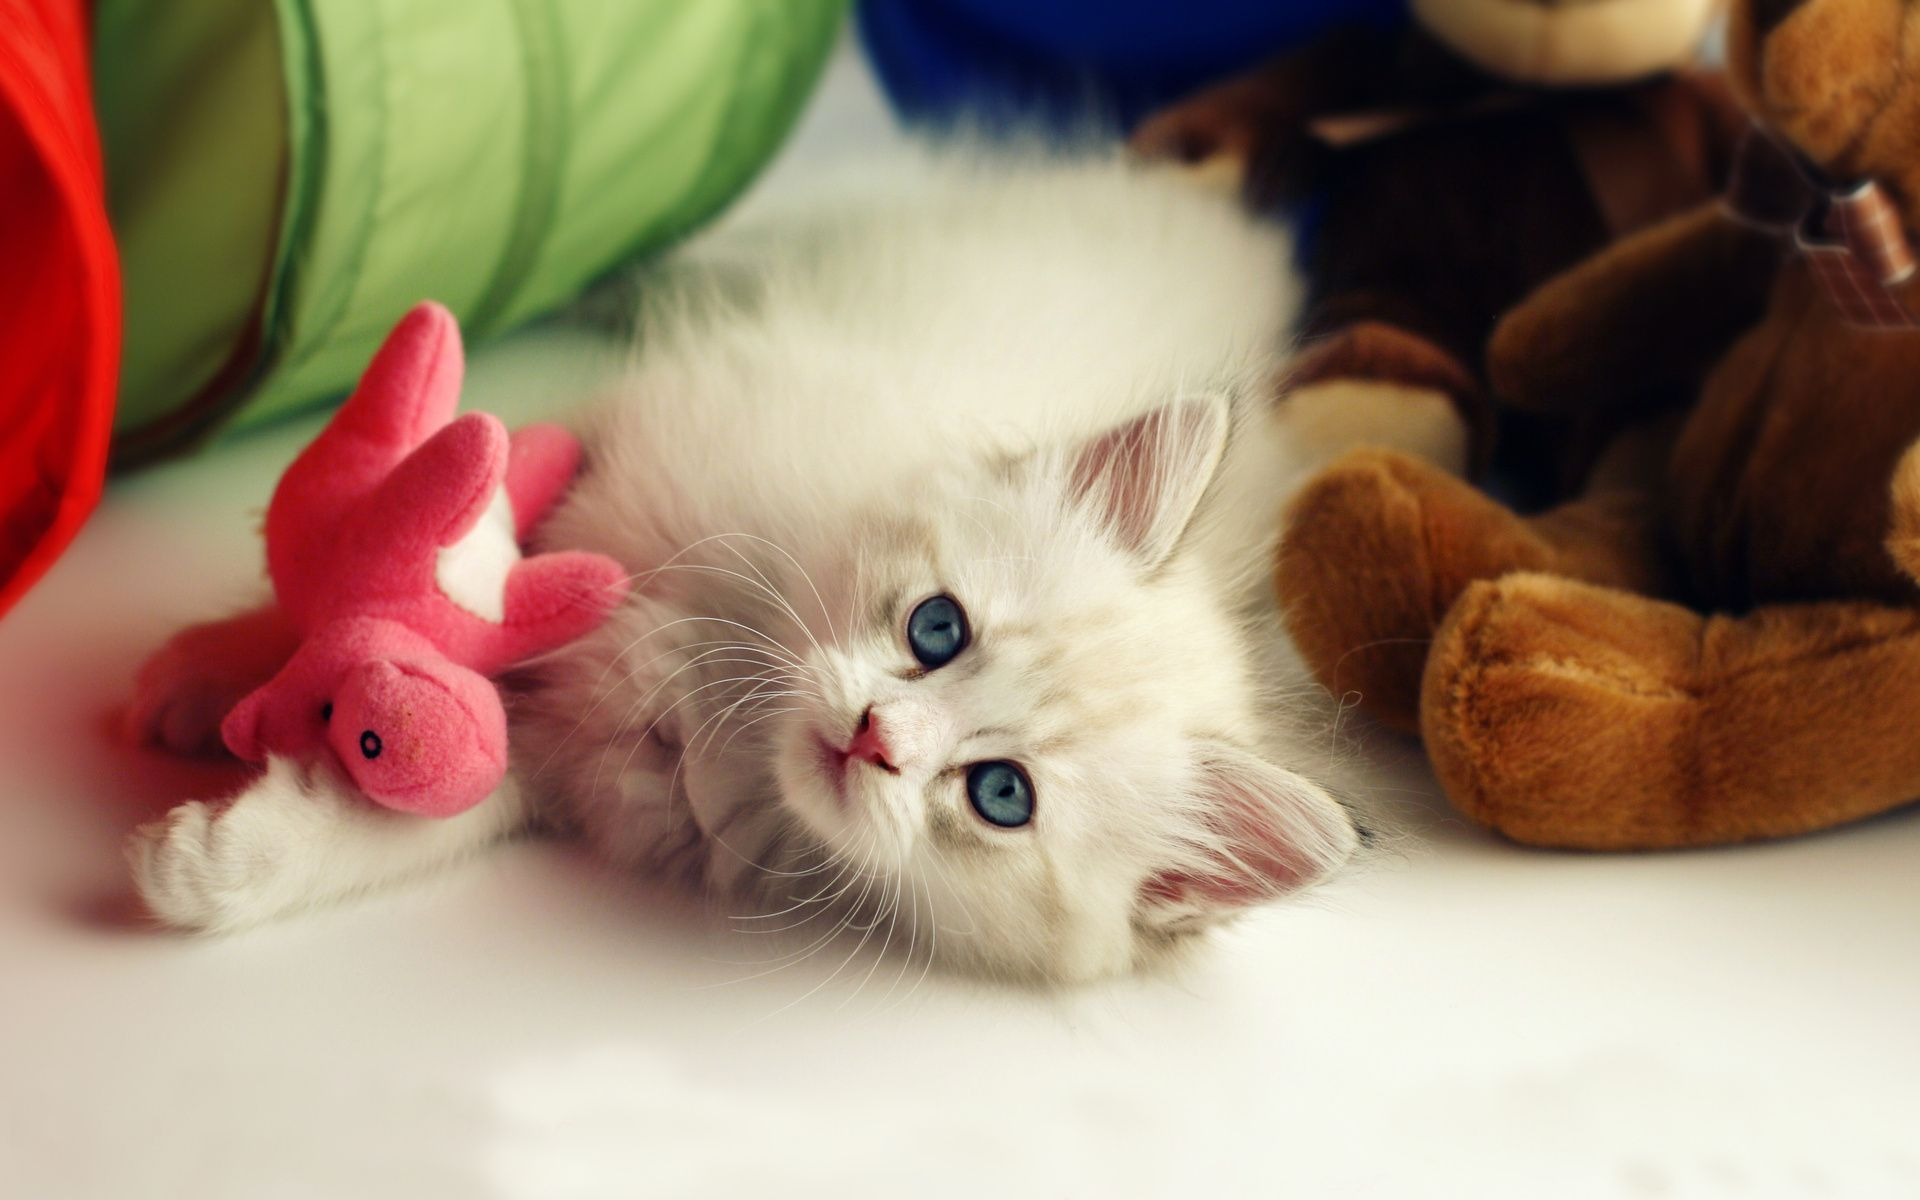 Cat Kitten And Toys Wallpapers